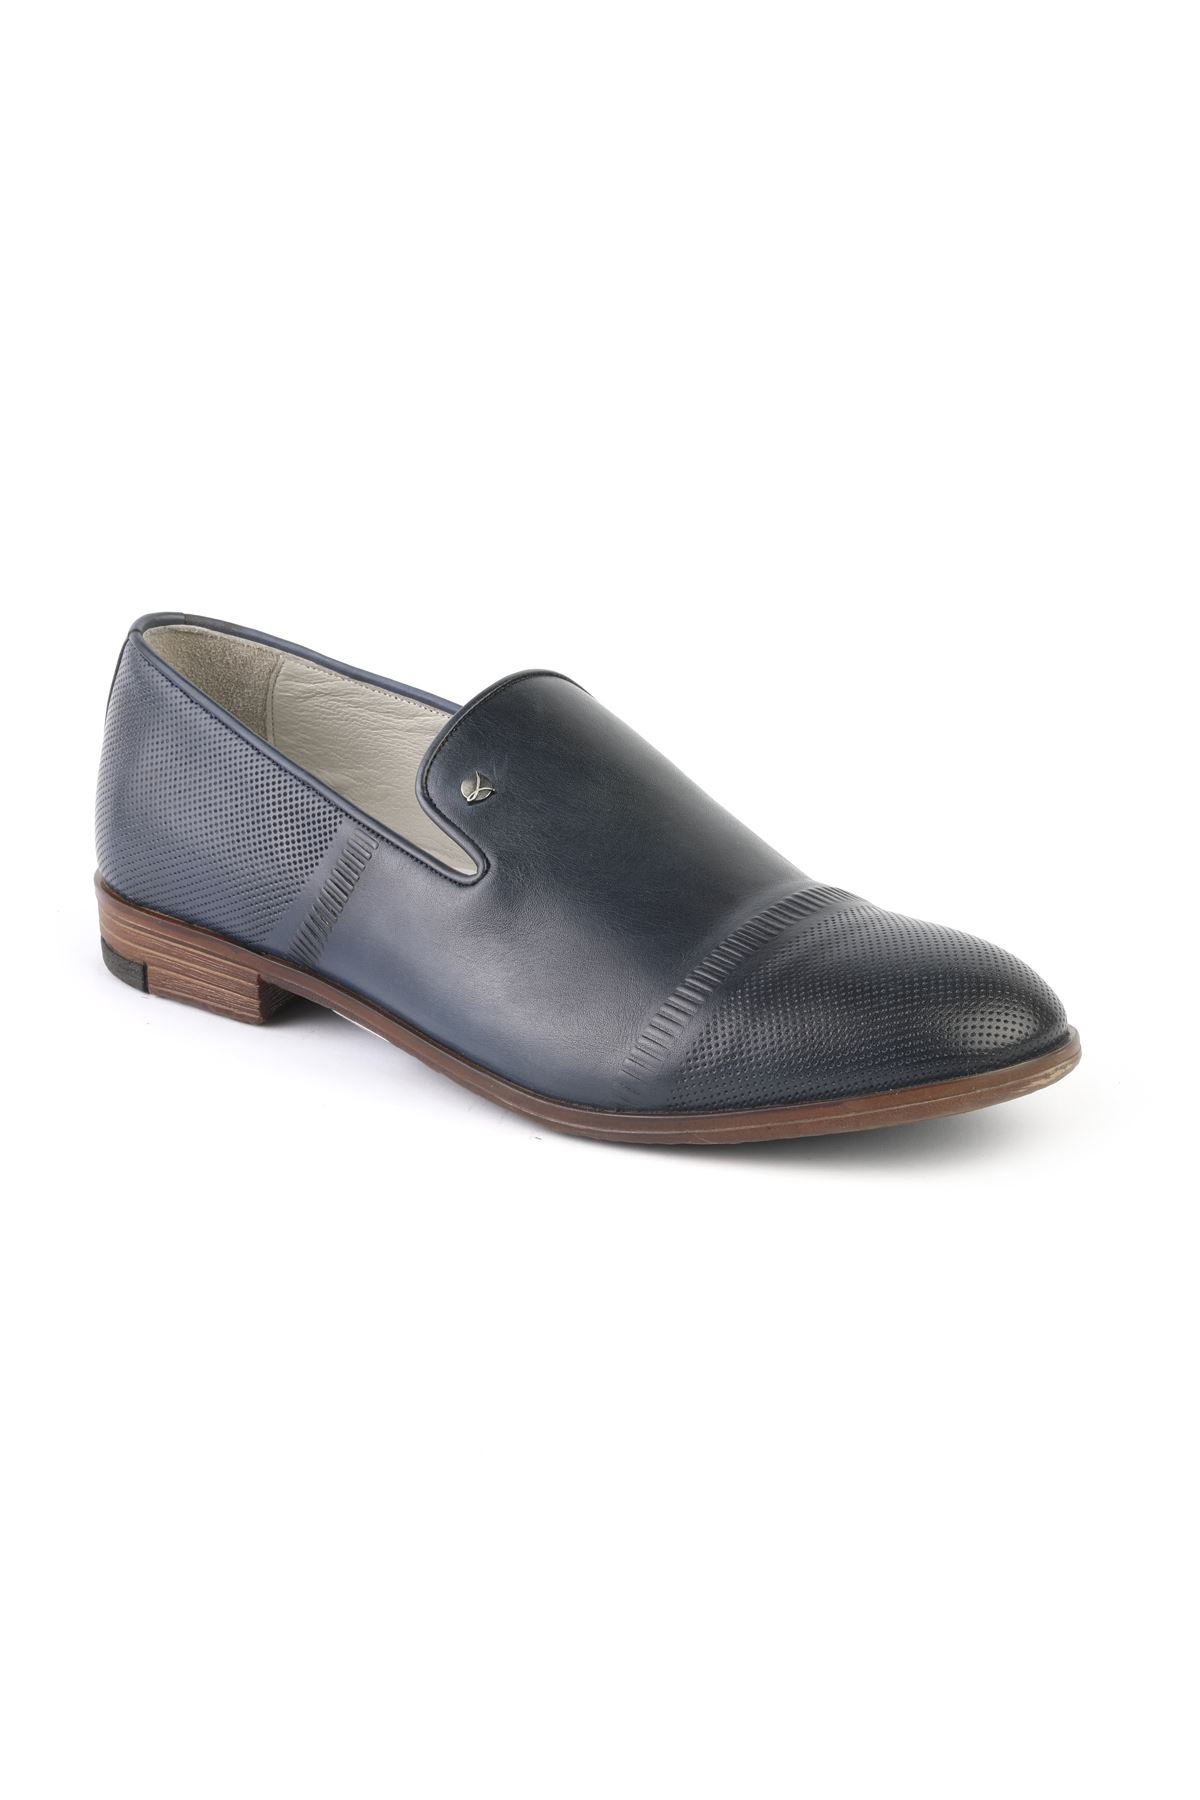 Libero T1218 Navy Blue Casual Shoes